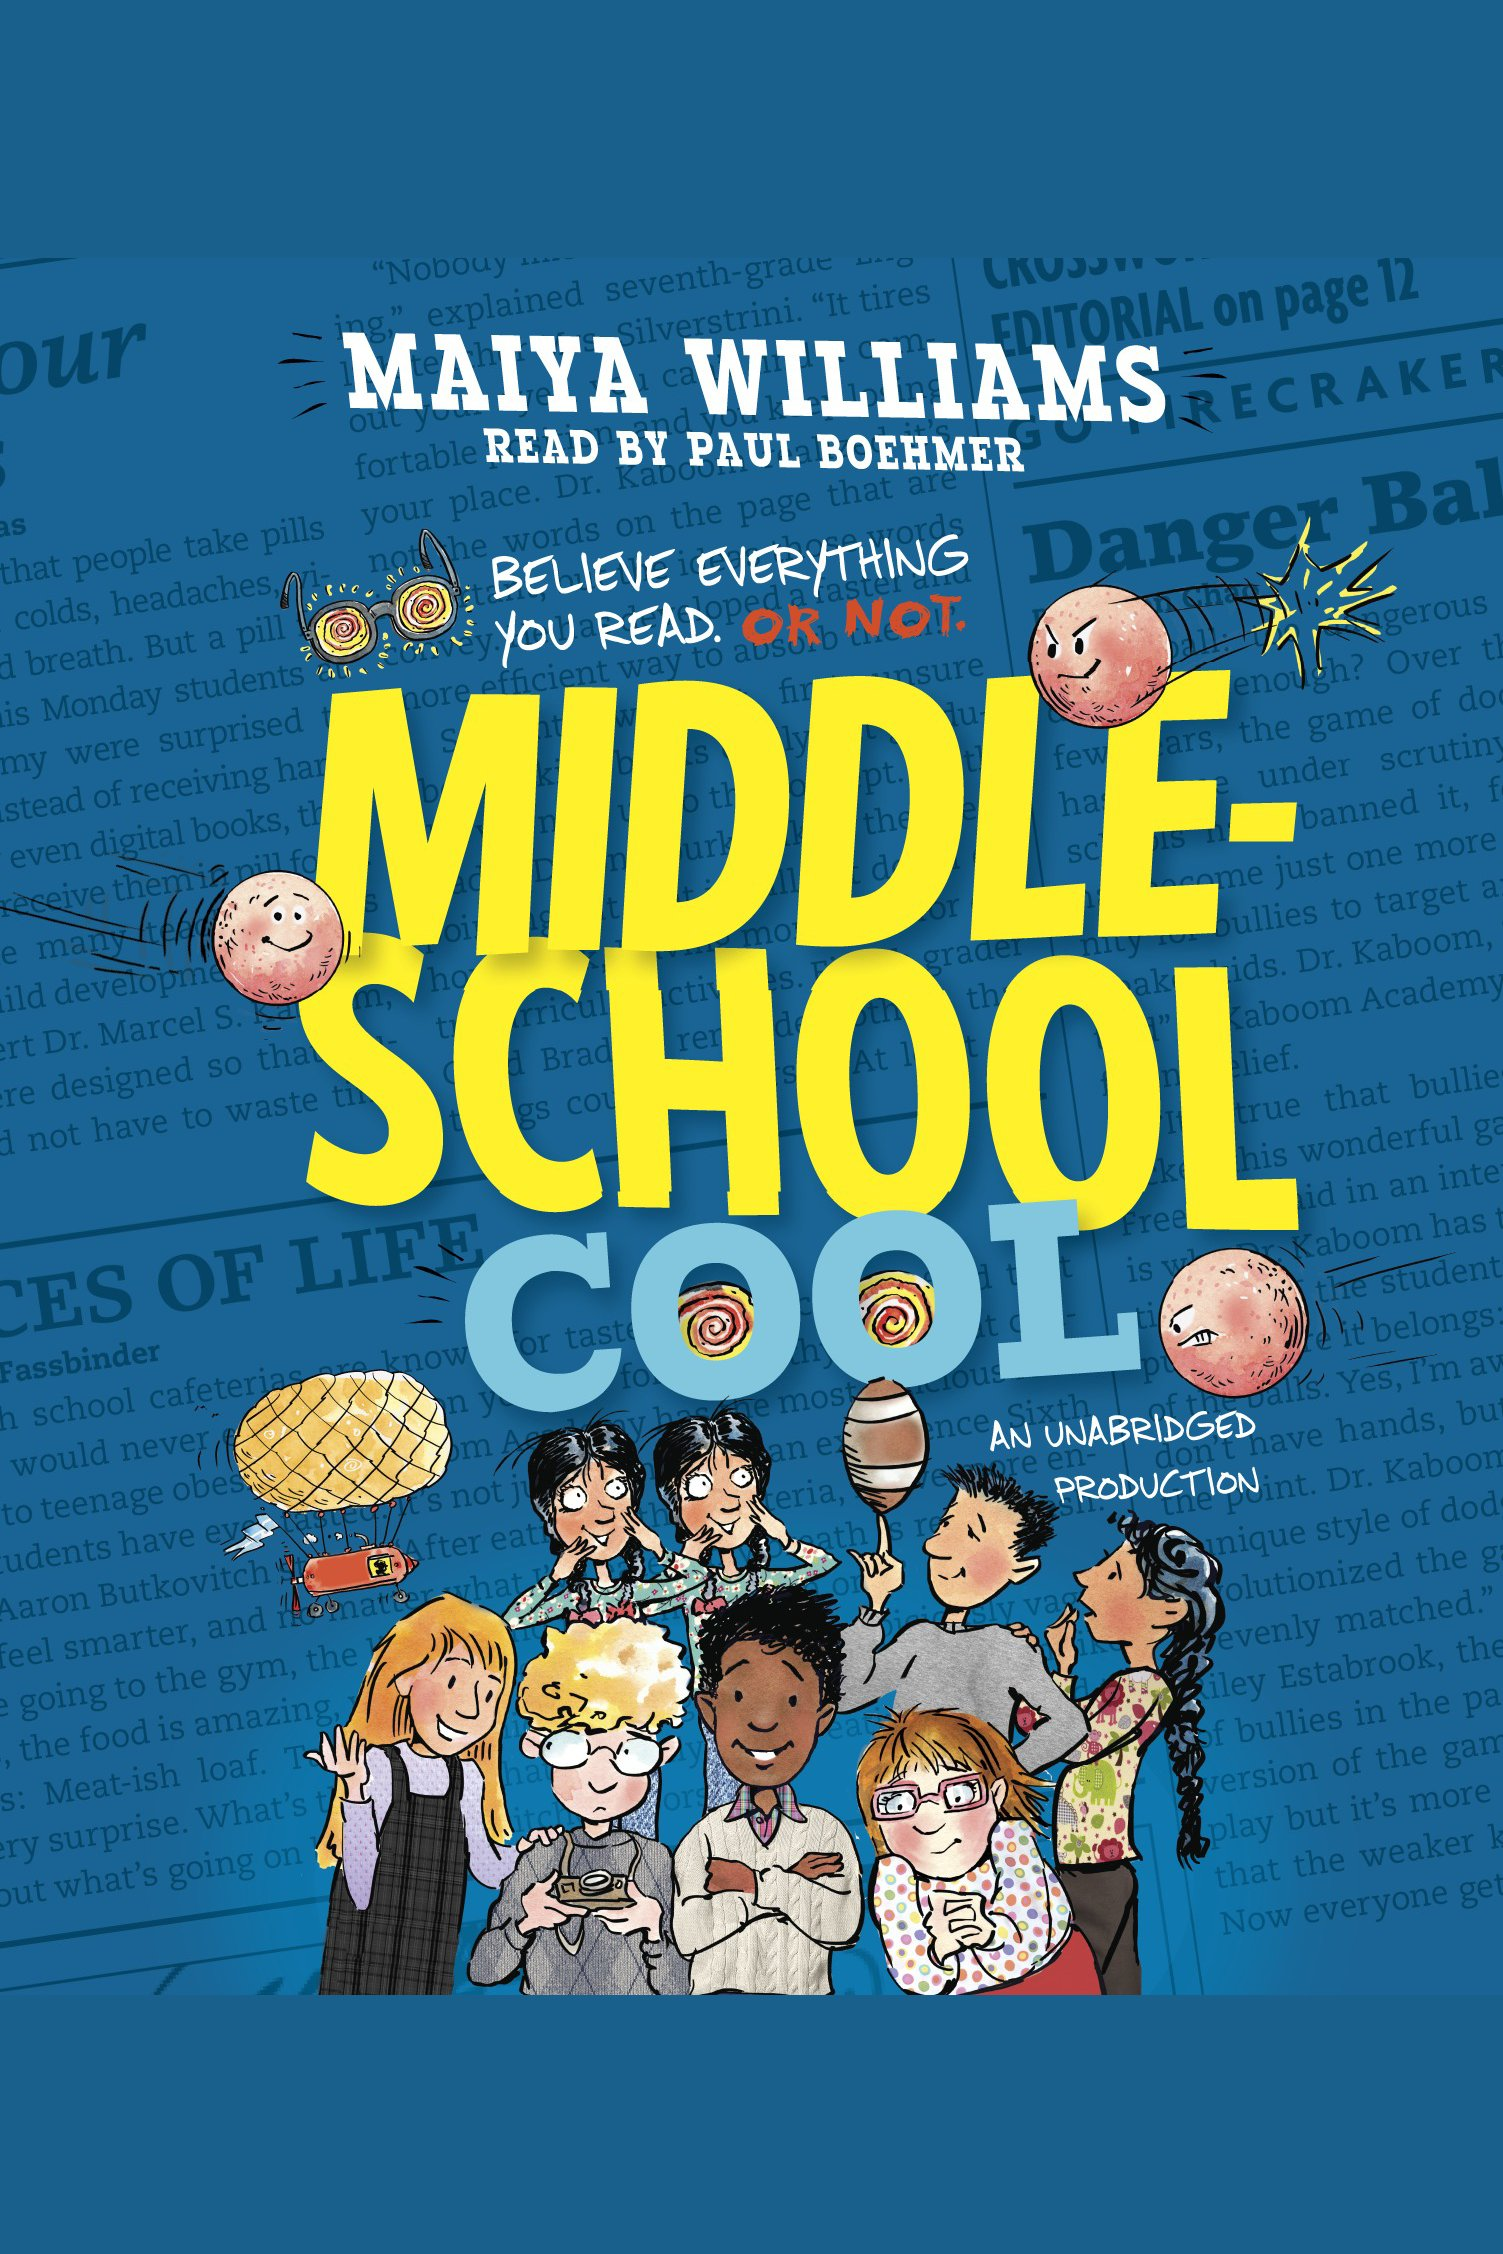 Middle-school cool cover image